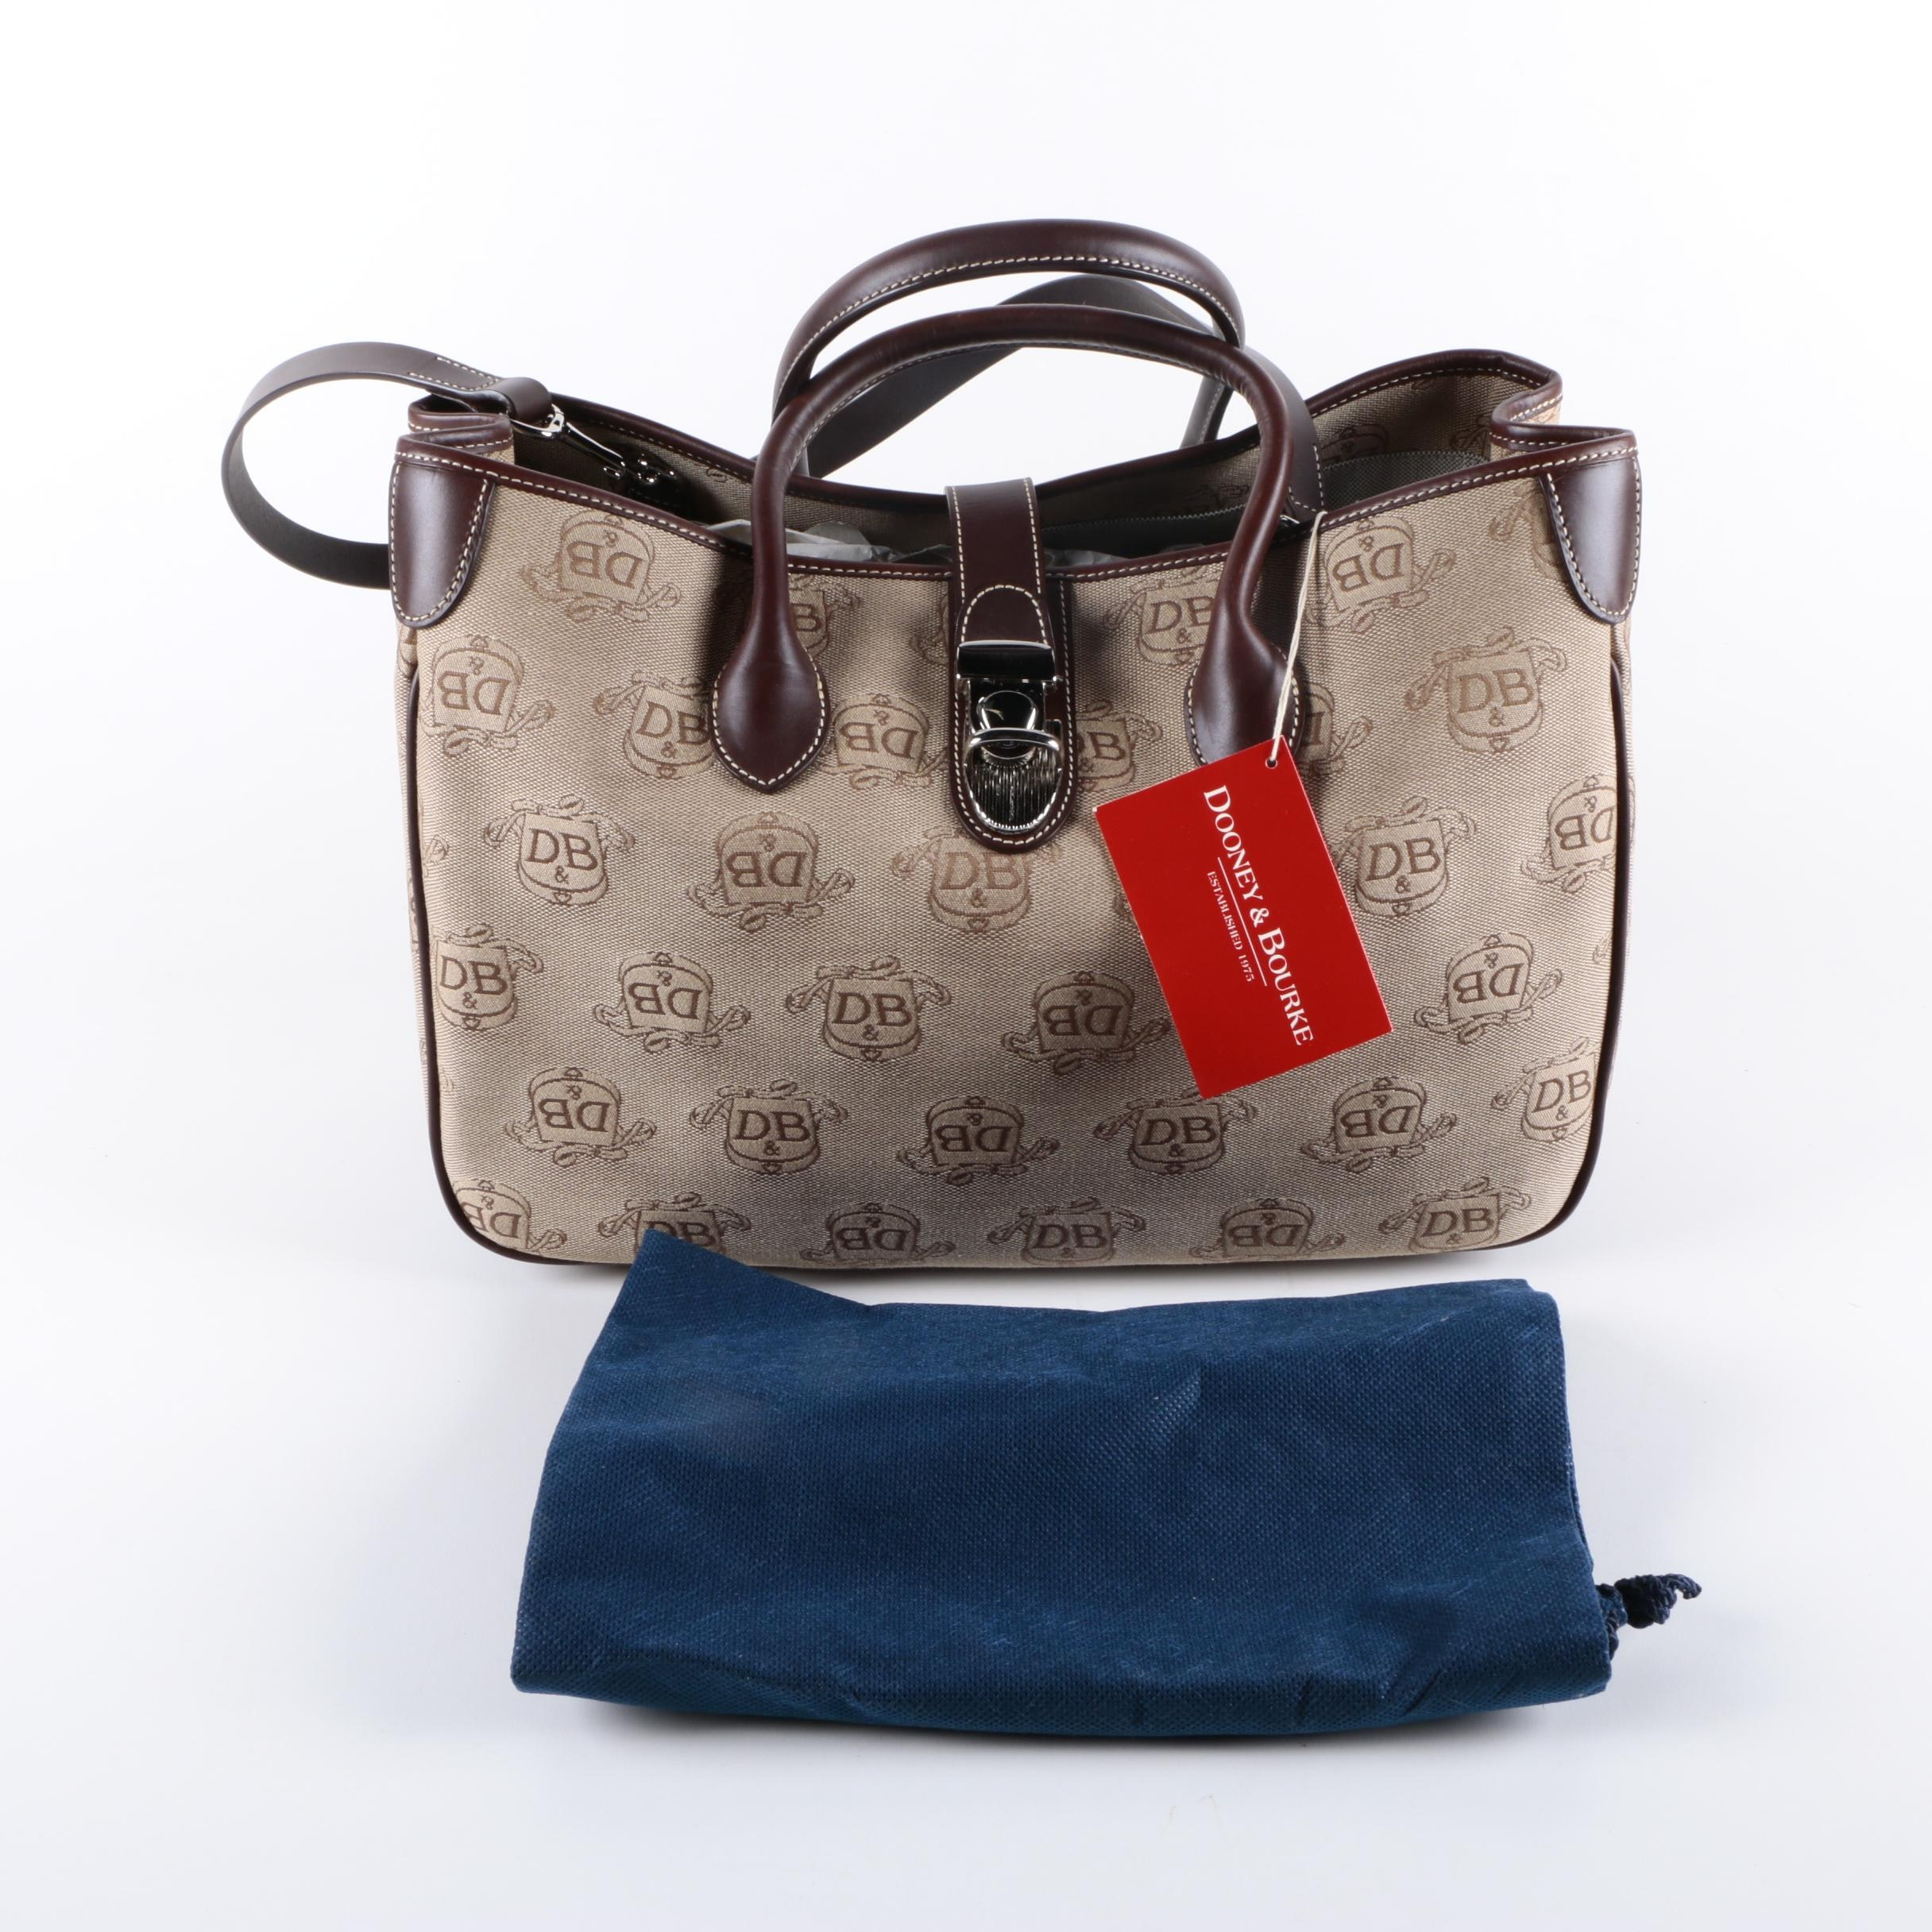 Dooney & Bourke Signature Canvas and Leather Tote